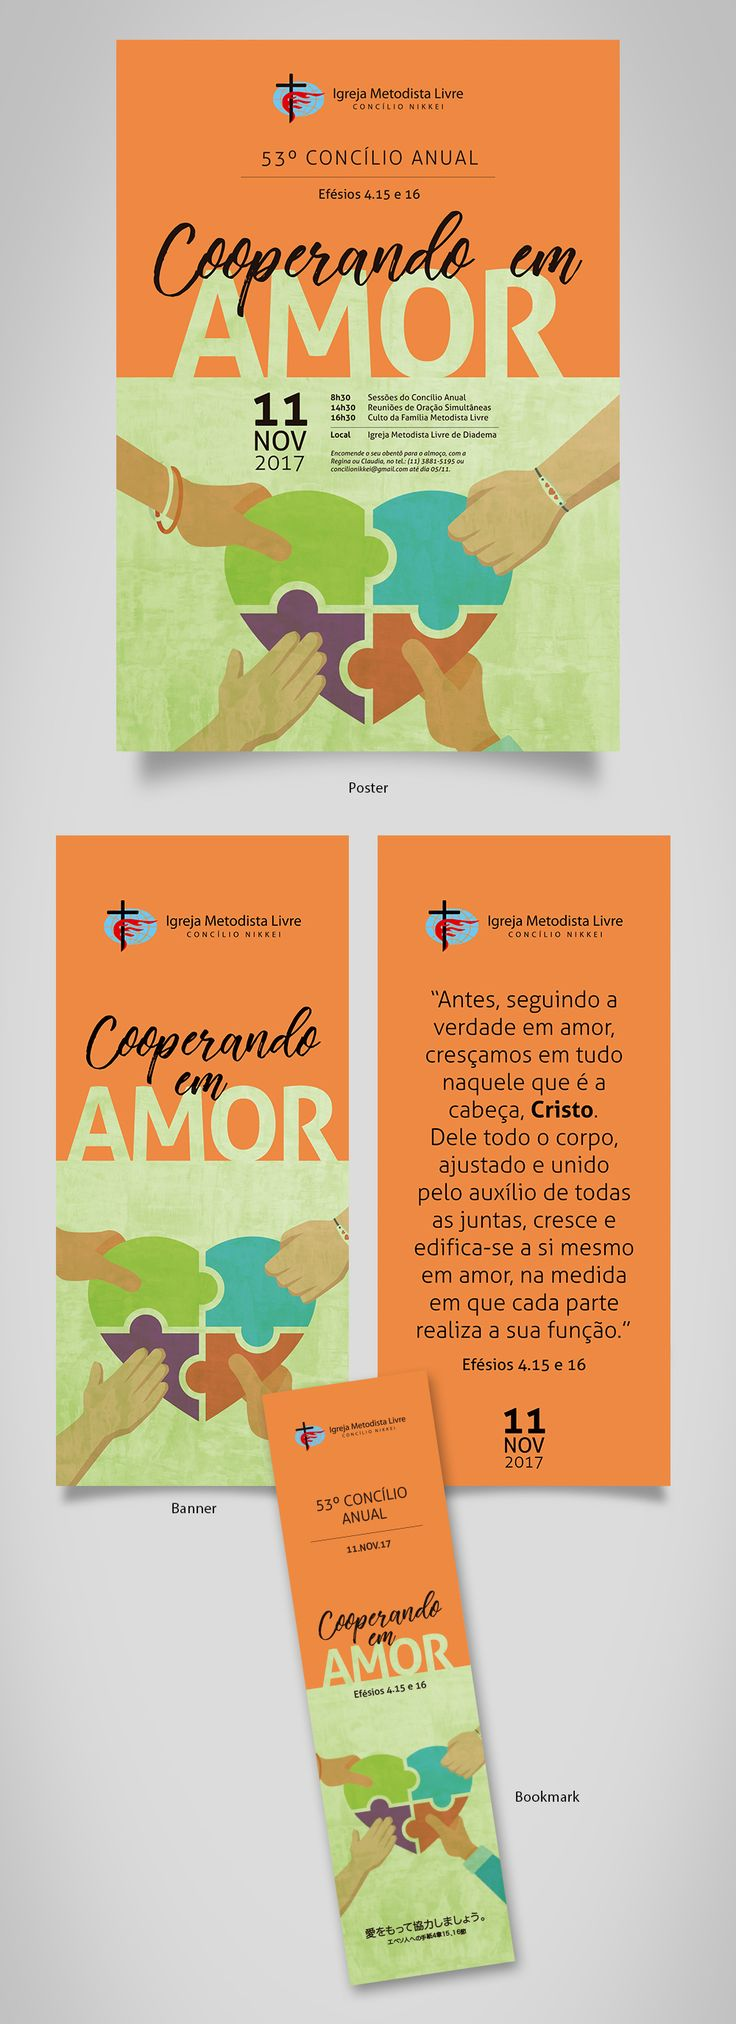 Free Methodist Church in Brazil (Nikkei council), poster, banner and bookmark - designed by Sandra H. V.